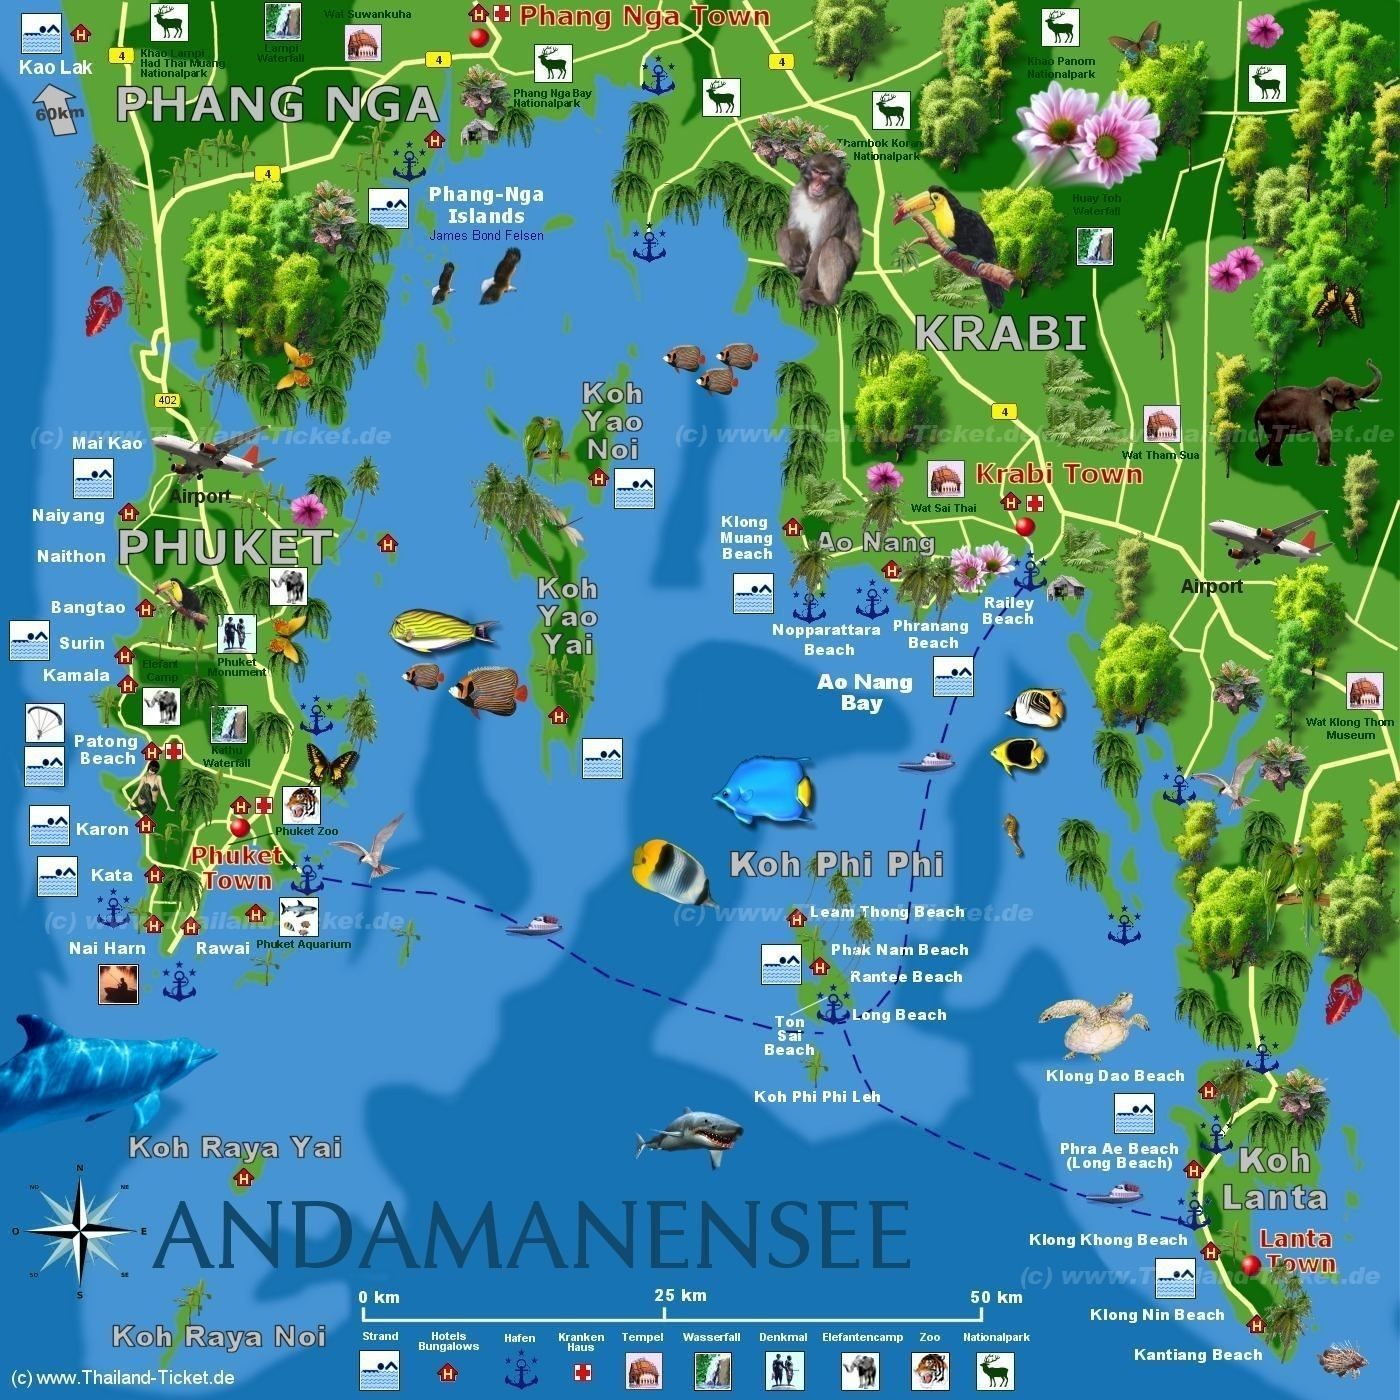 Carte Thailande Phuket Krabi.Krabi Koh Phi Phi Map Travel Bucket List In 2019